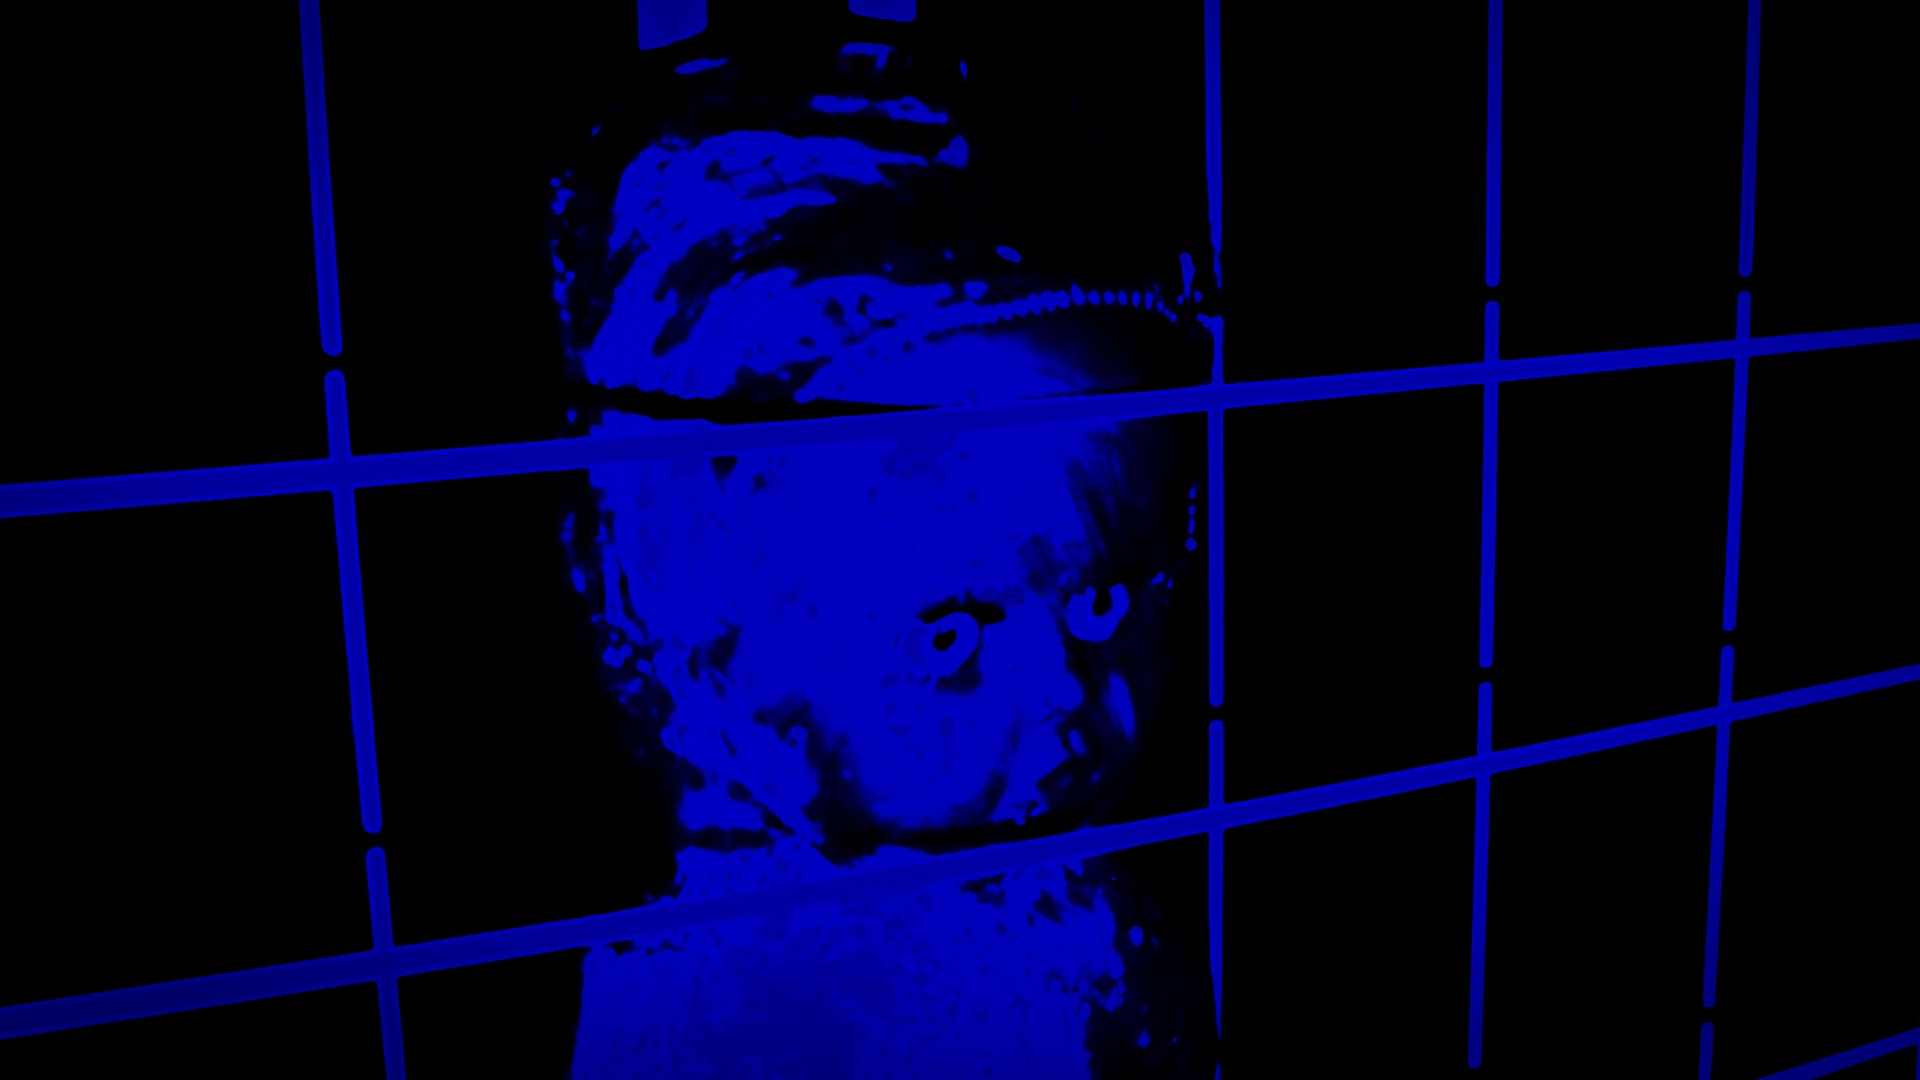 doll in blue cage image